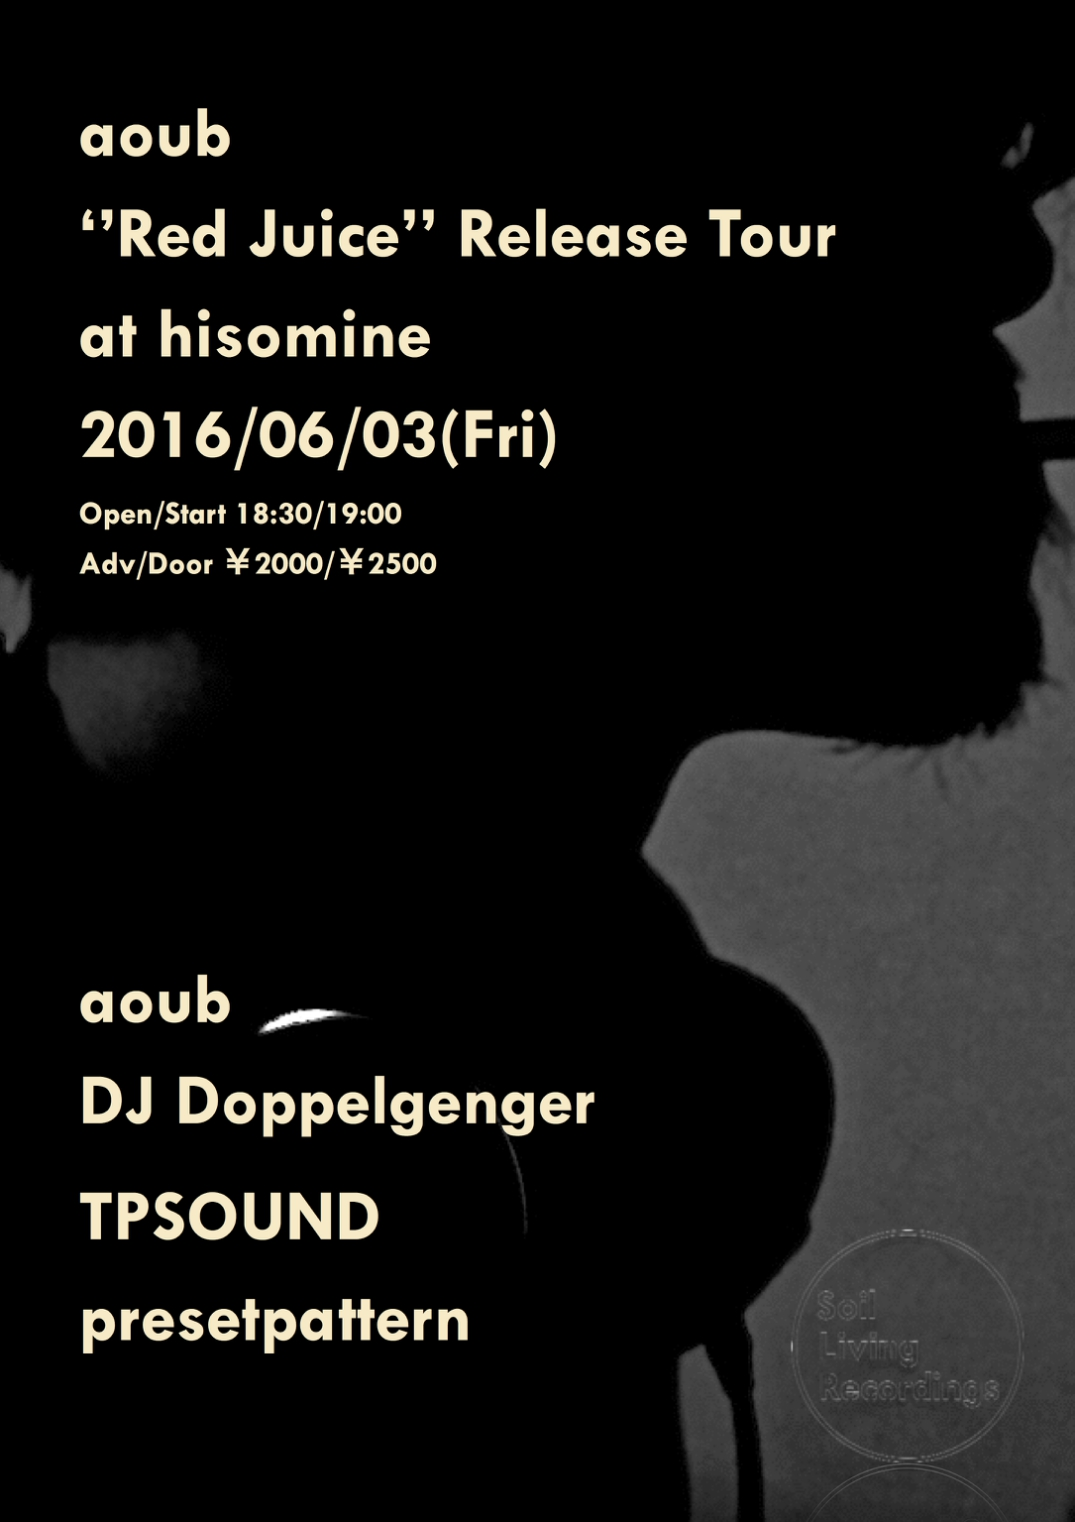 County ''aoub『Red Juice』 Release Tour'' at histamine